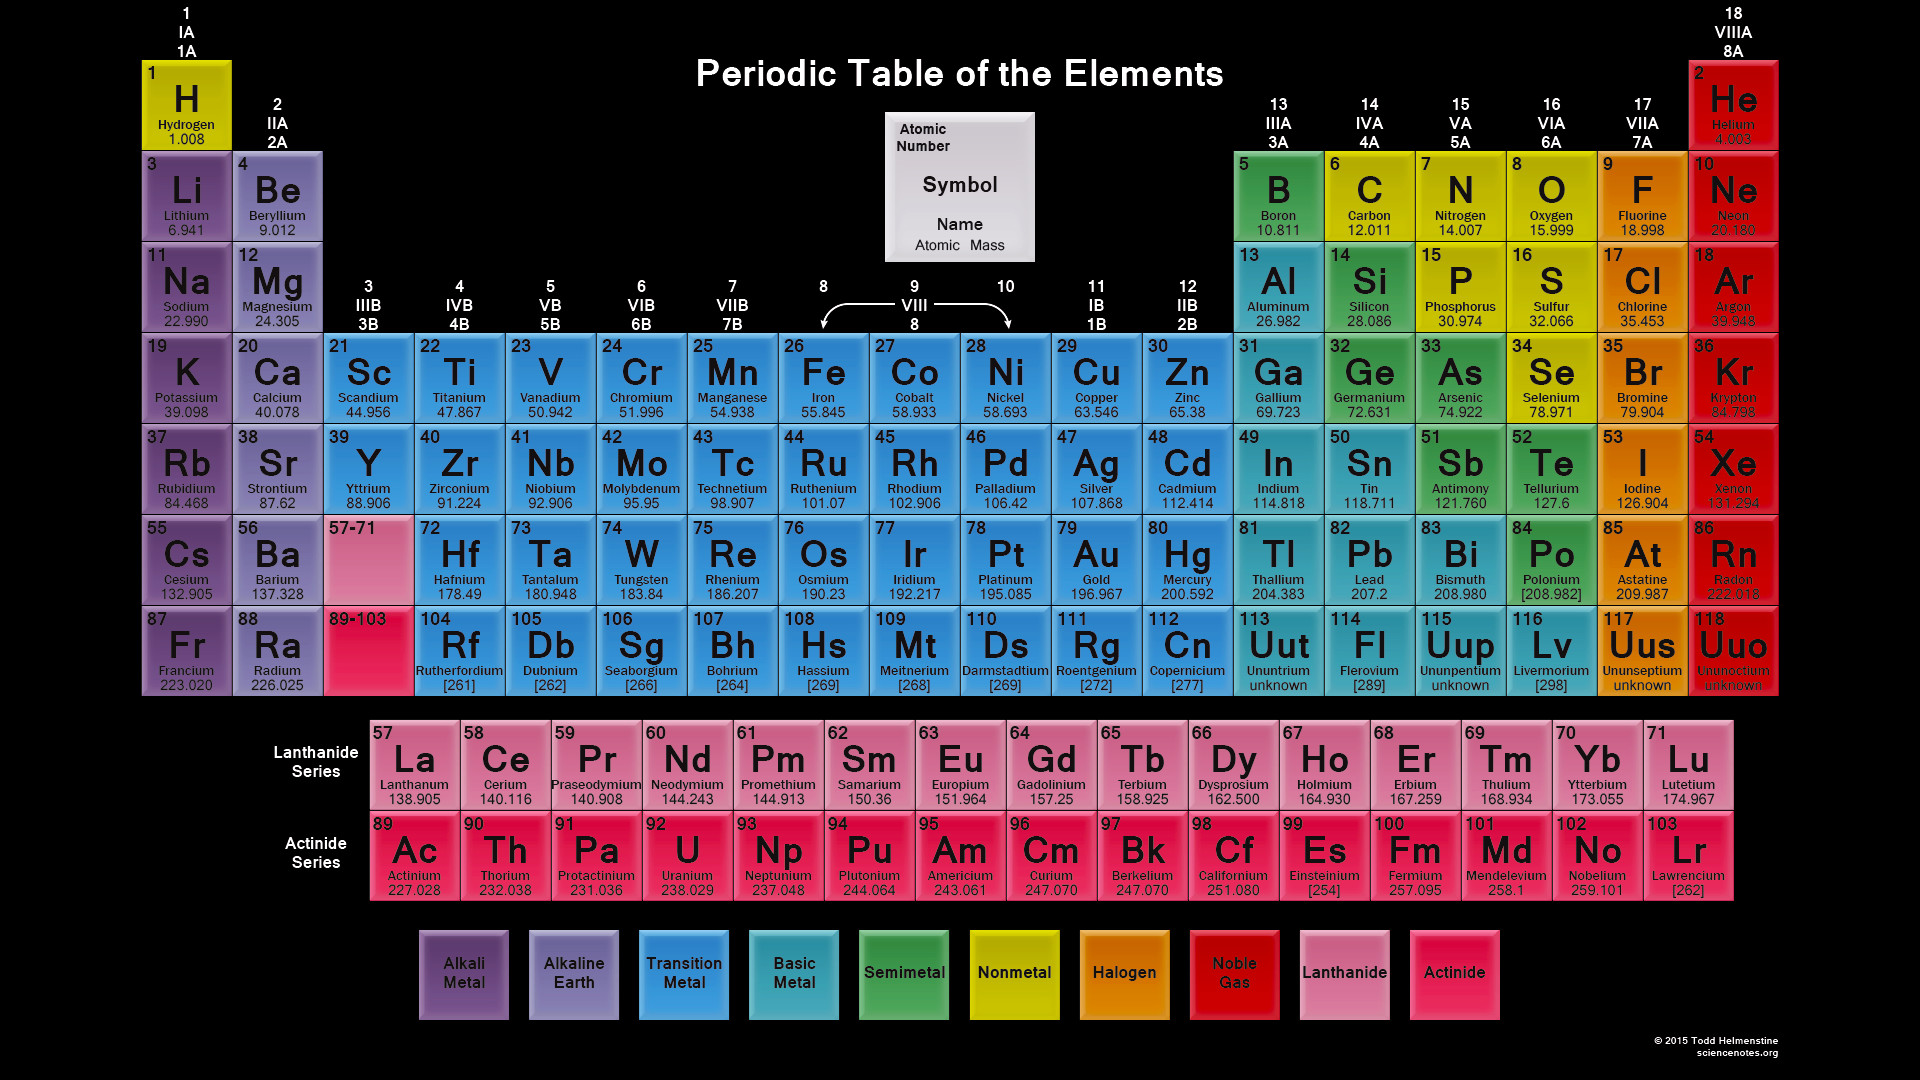 Periodic table hd wallpaper gallery periodic table images periodic table hd image download image collections periodic download periodic table app images periodic table images gamestrikefo Choice Image